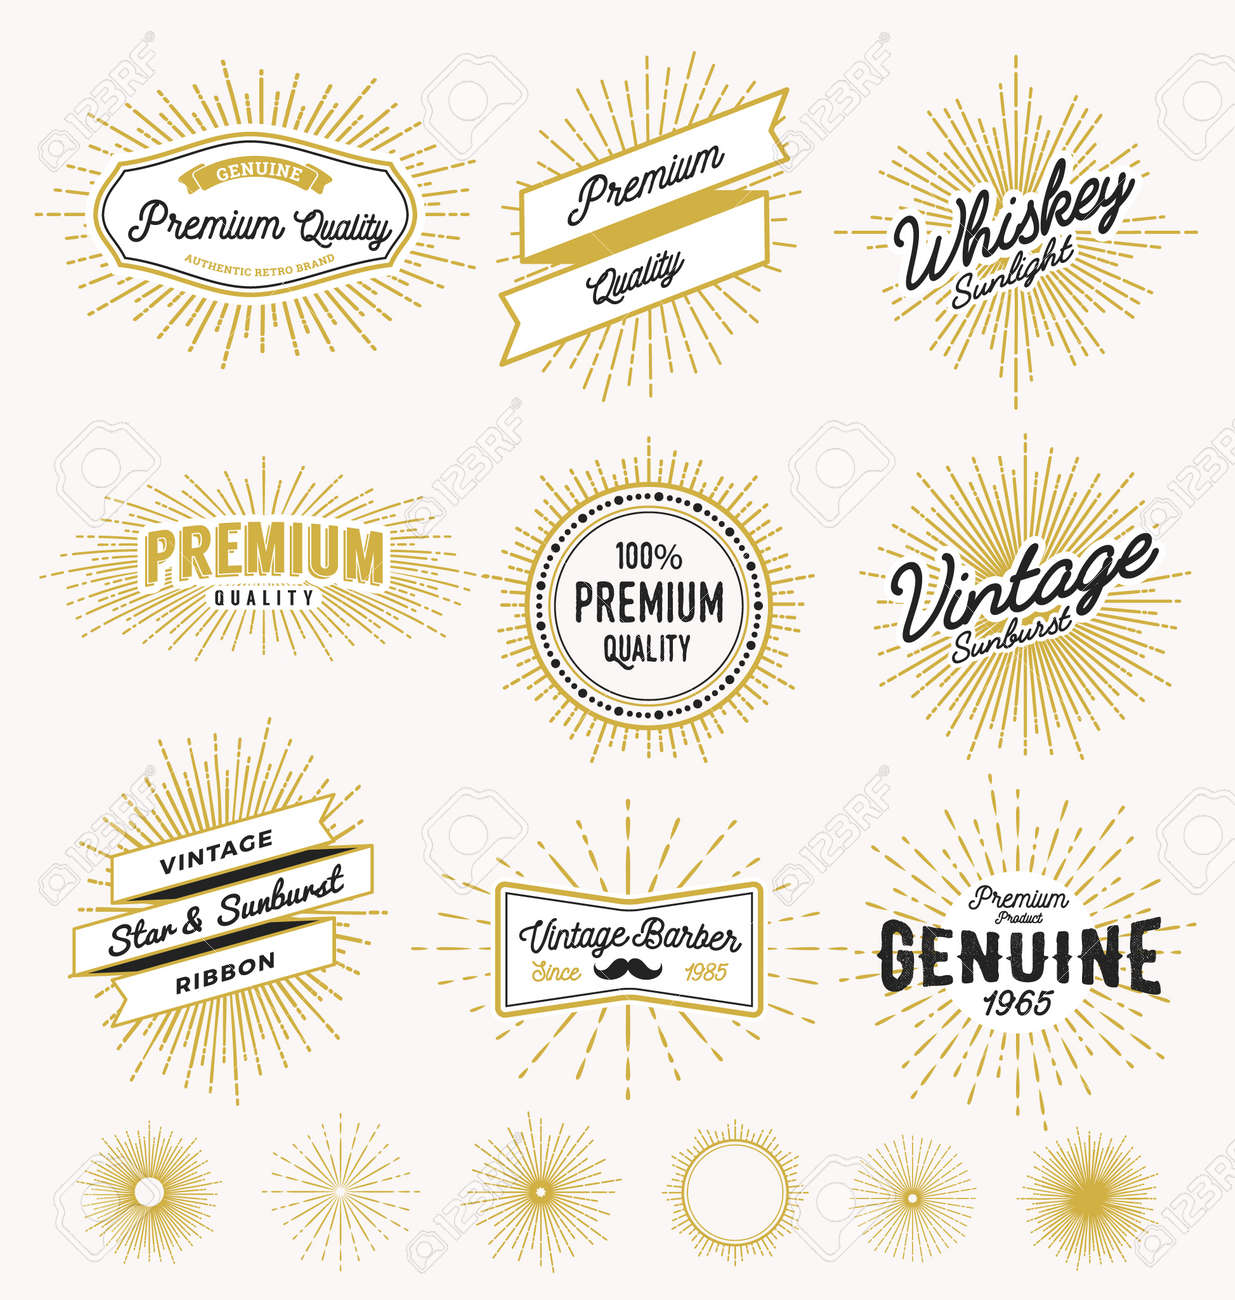 Set of vintage sunburst frame and label design. Vintage light ray sticker and banner collection for premium quality product, handcrafted product. Vector illustration - 45707855